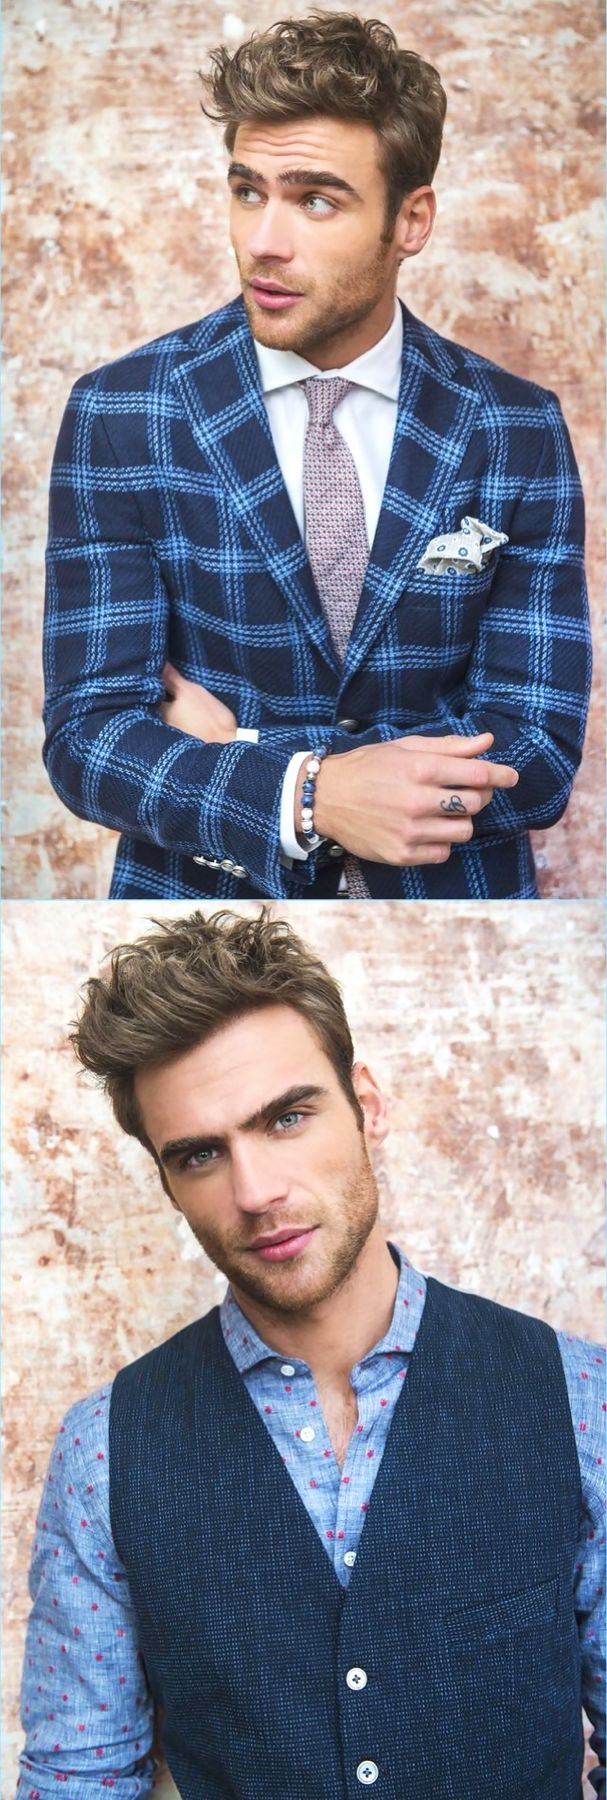 George Alsford, Men's Fashion, Style, Clothing, Male Model, Beautiful Man, Guy, Dude, Handsome, Hot, Sexy, Eye Candy, Suits, Jacket, Necktie, Pocketchief メンズファッション 男性モデル スーツ ジャケット ネクタイ ポケットチーフ